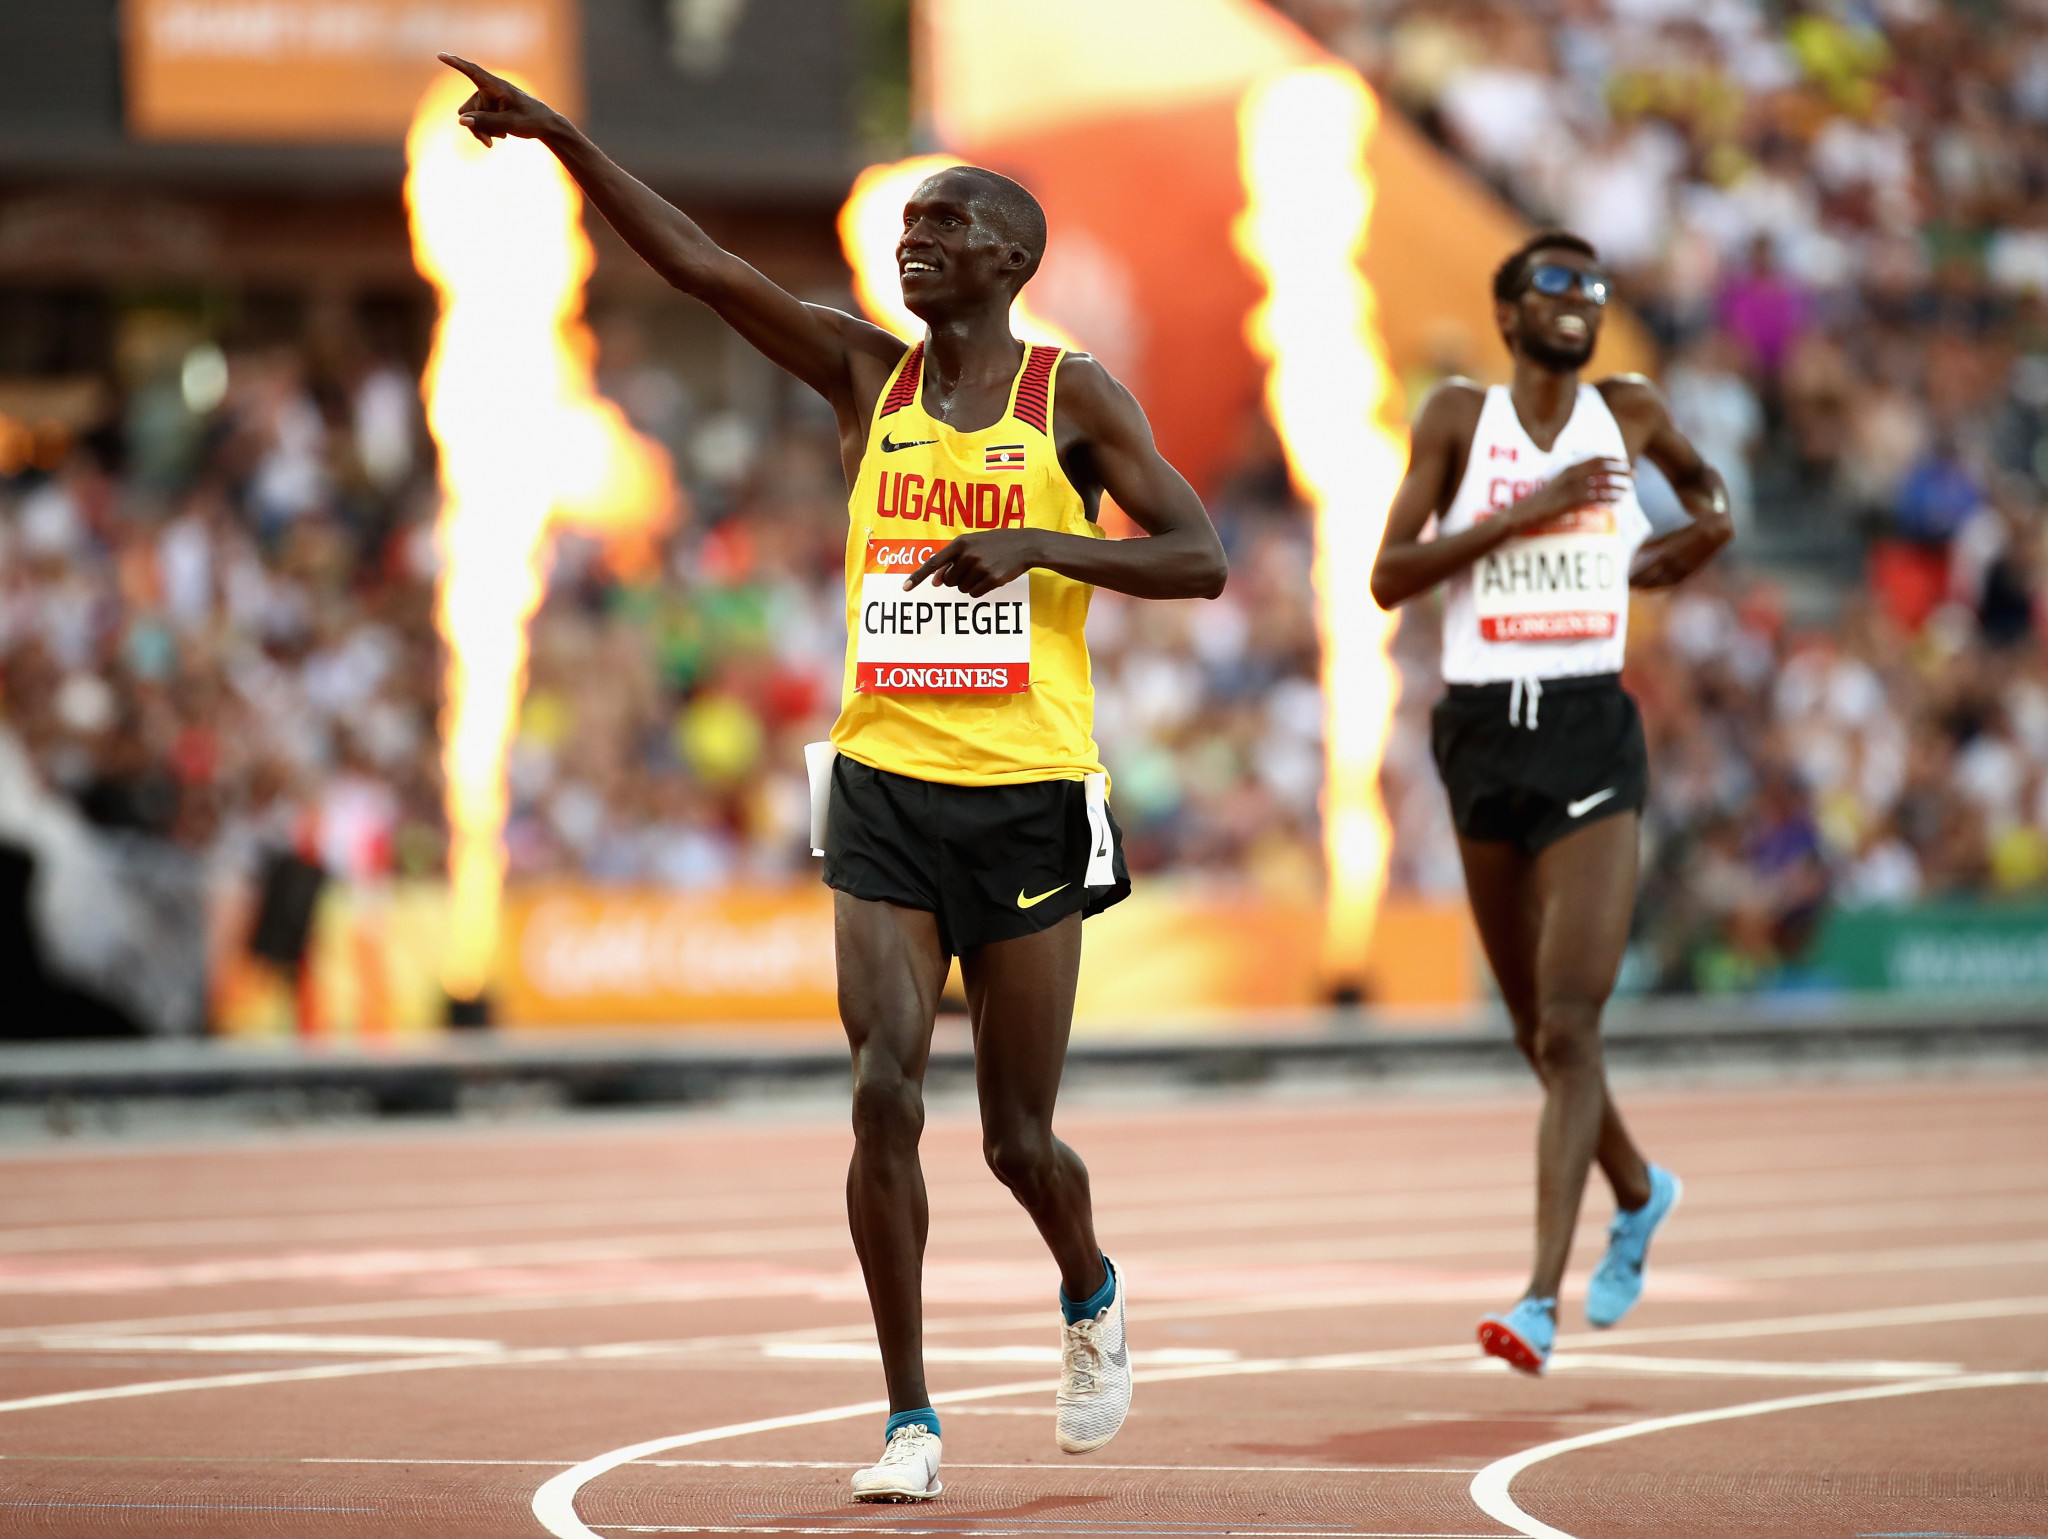 Cheptegei and Miller star on opening day of Gold Coast 2018 athletics